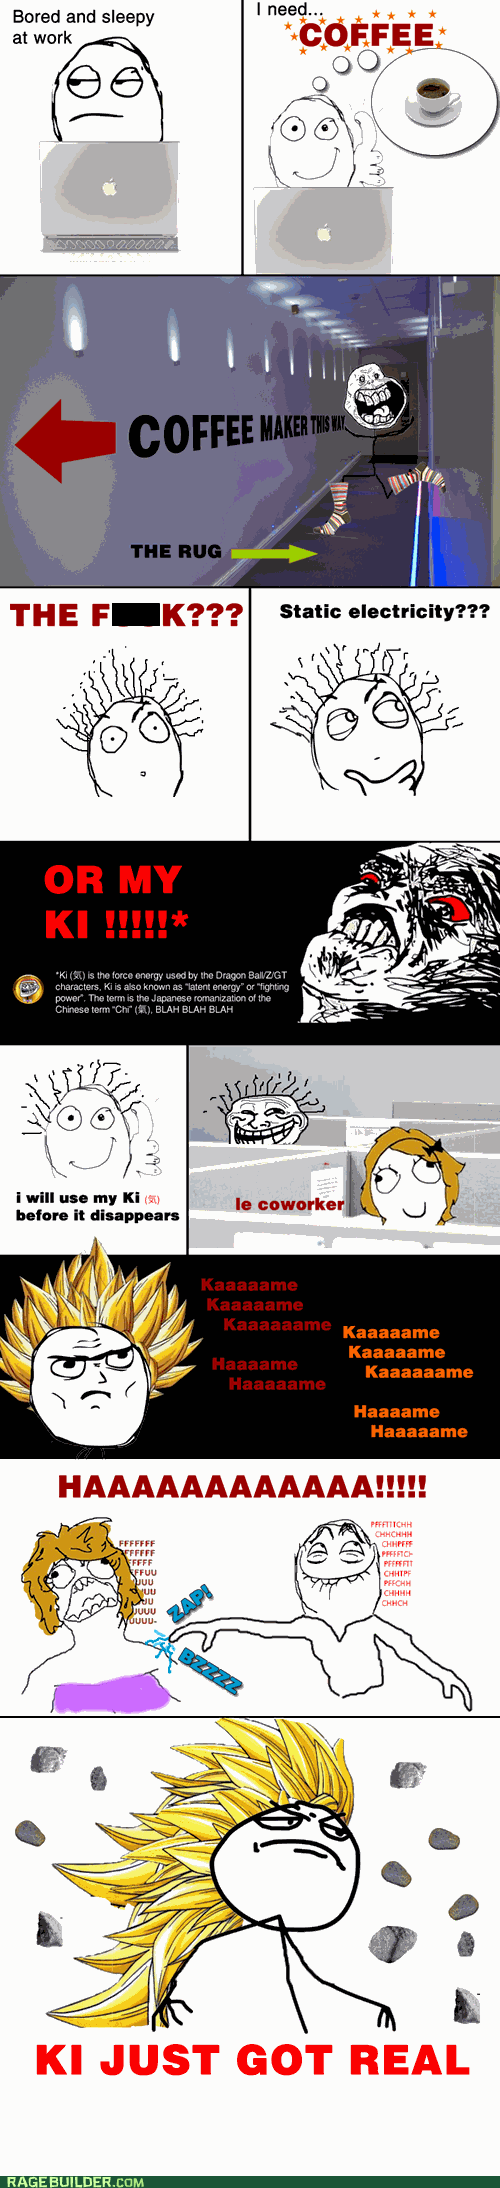 Like a Boss work dragonball z Office coffee - 5553952000